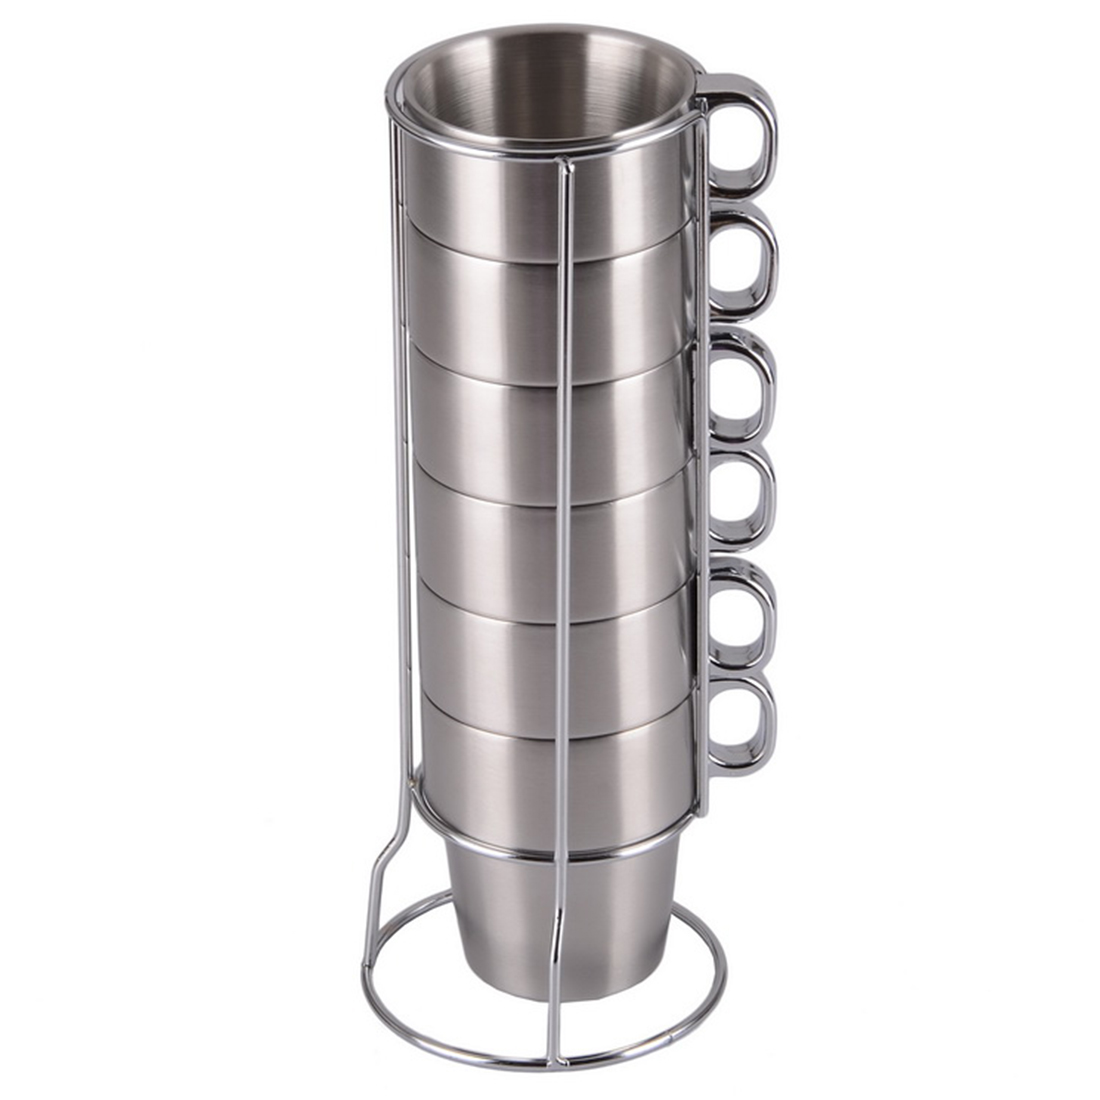 Hot Kitchen Accessories Stainless Steel Coffee mug Solid Color Coffee cup sell by set 6 cups